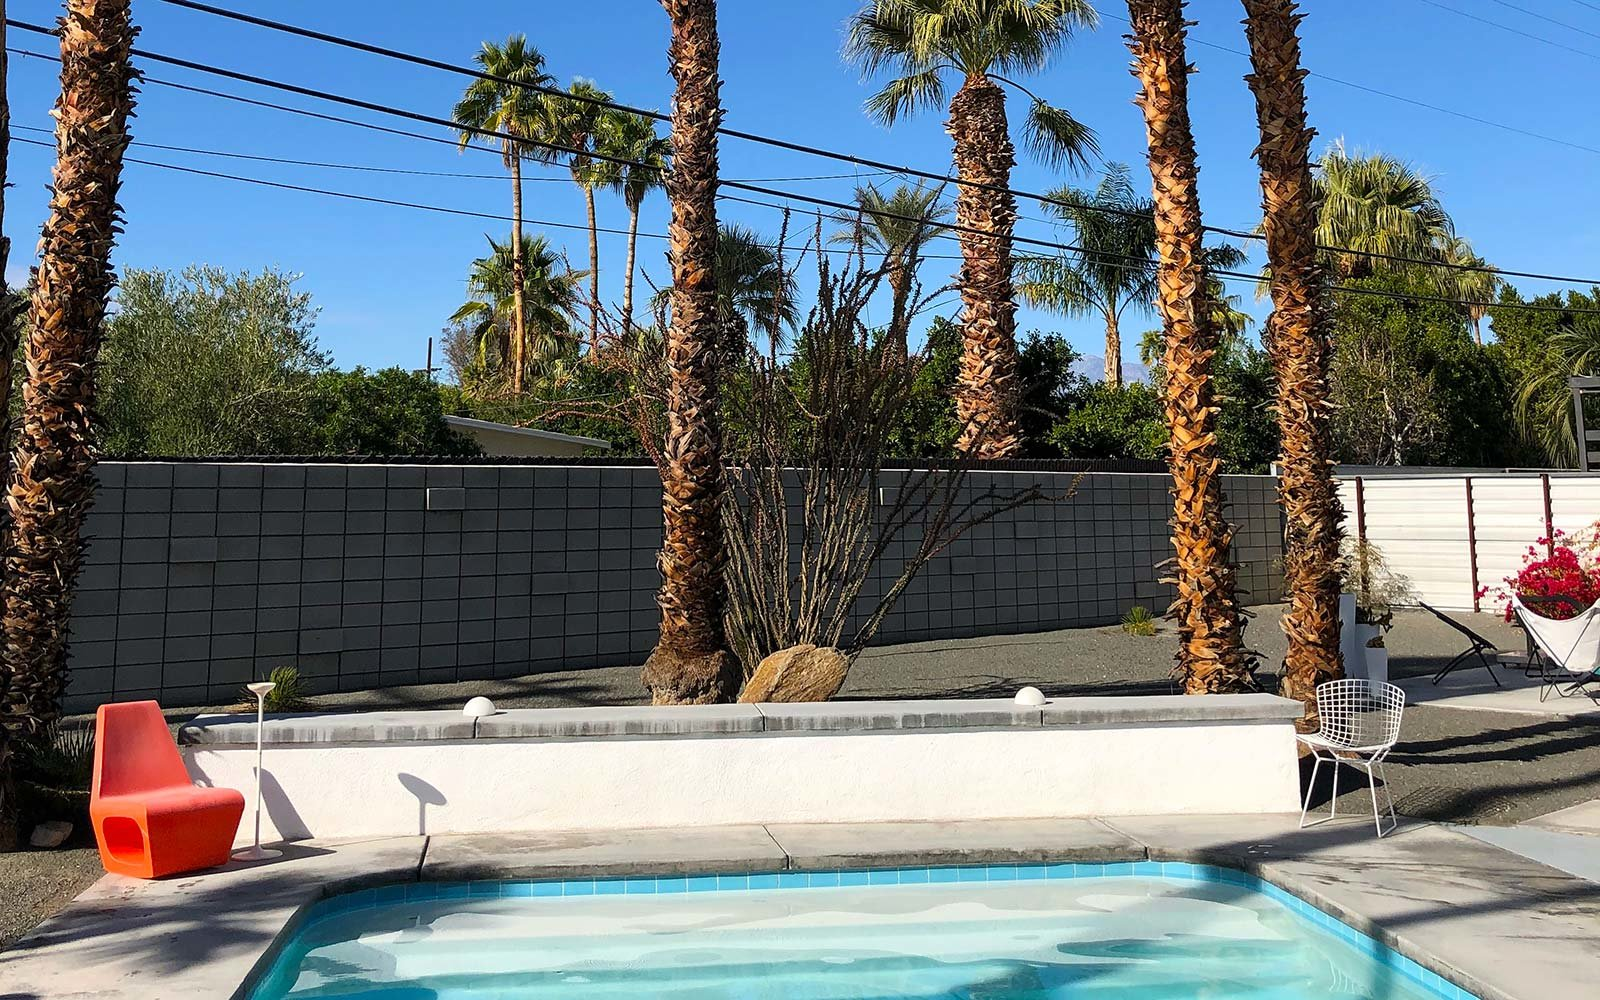 Palm Springs Pool Airbnb Rental